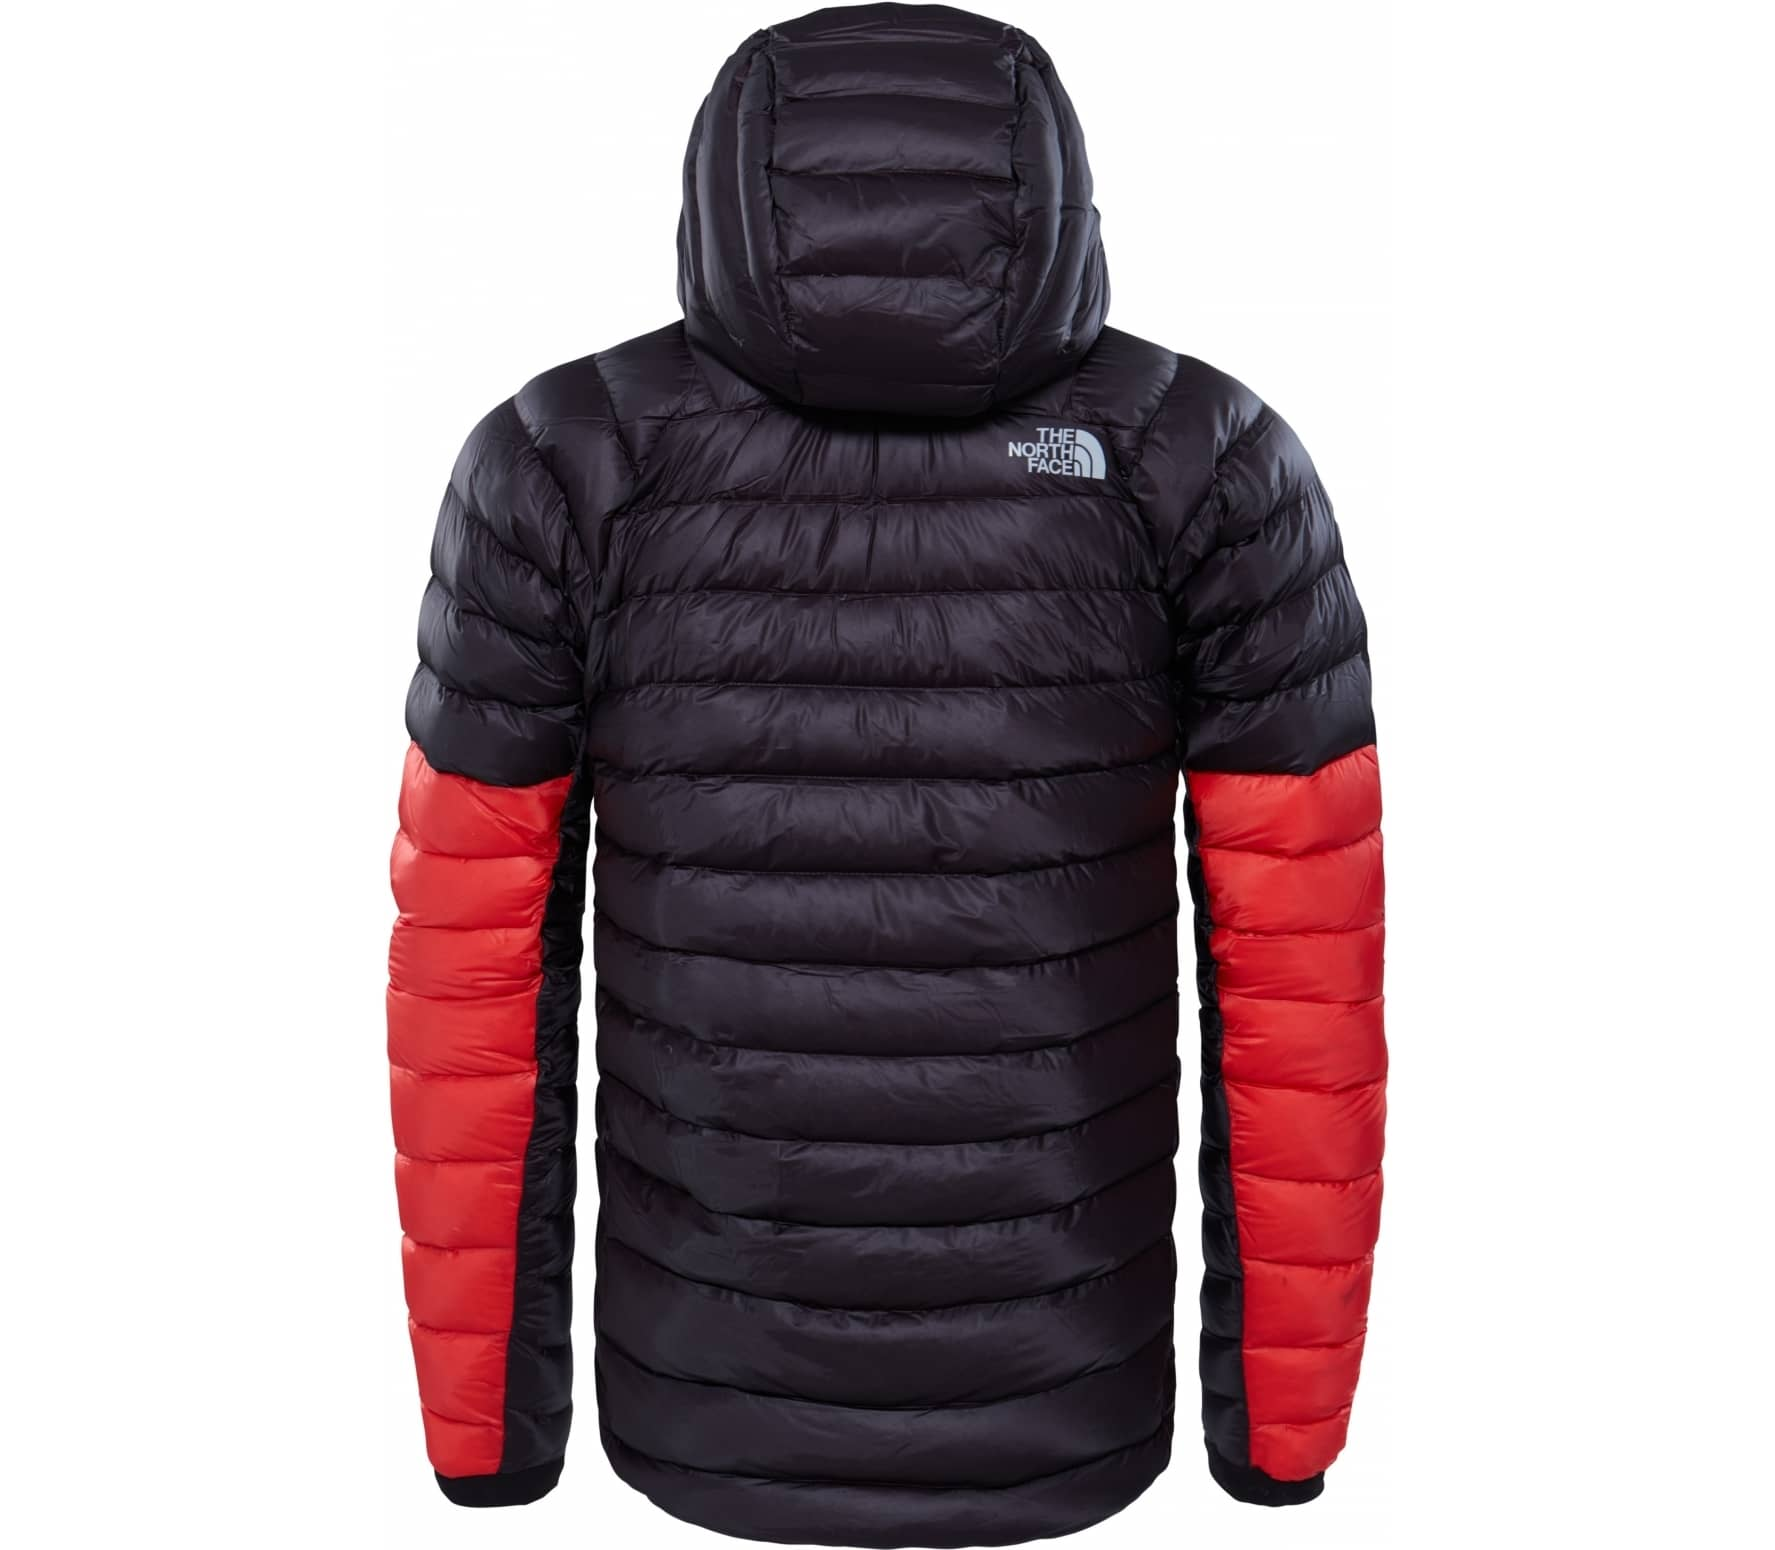 a3c7148eede1 The North Face - Summit L3 Down Hoodie Herren Daunenjacke (schwarz rot)